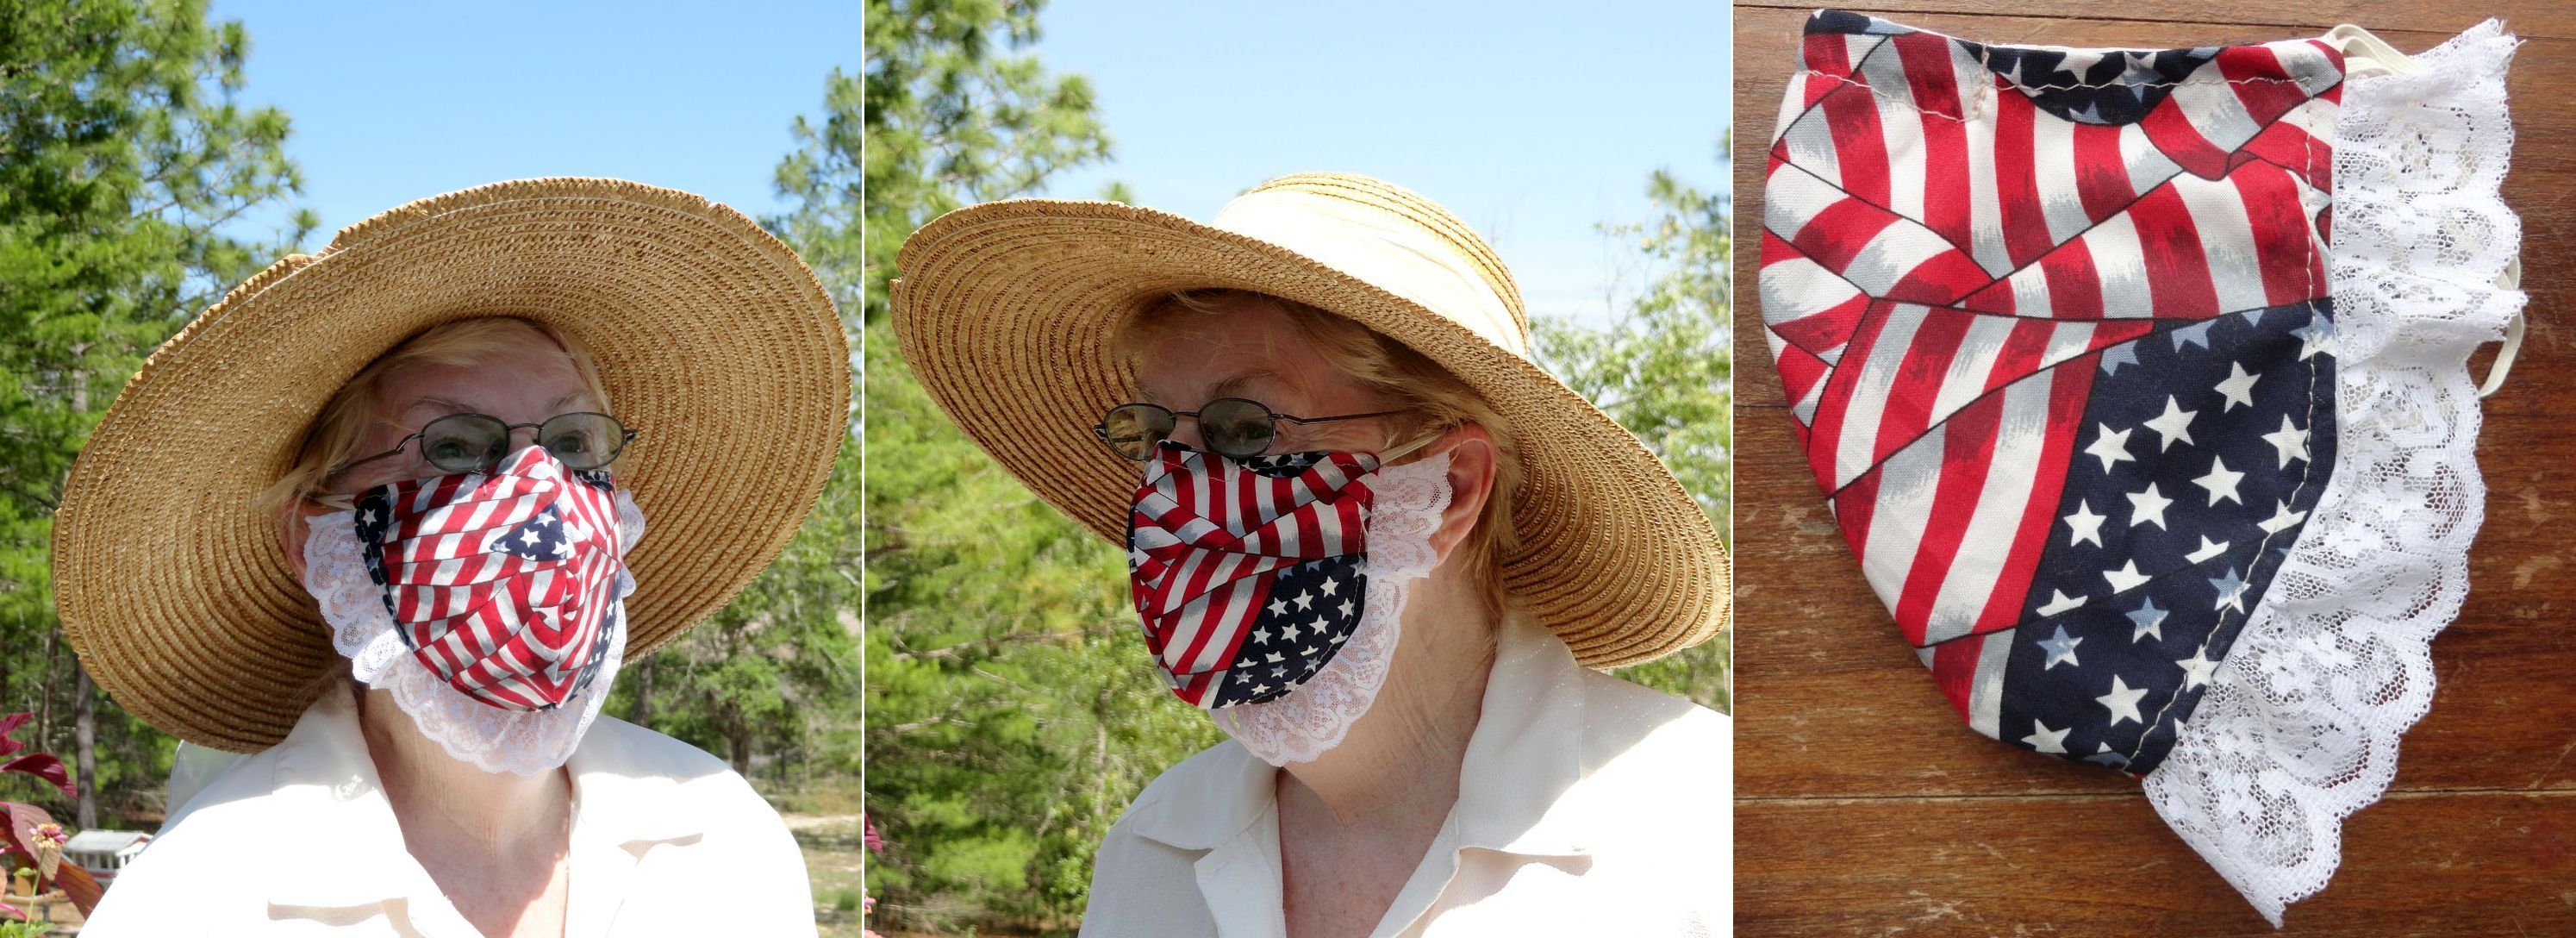 The Betsy Ross Mask, 3 views